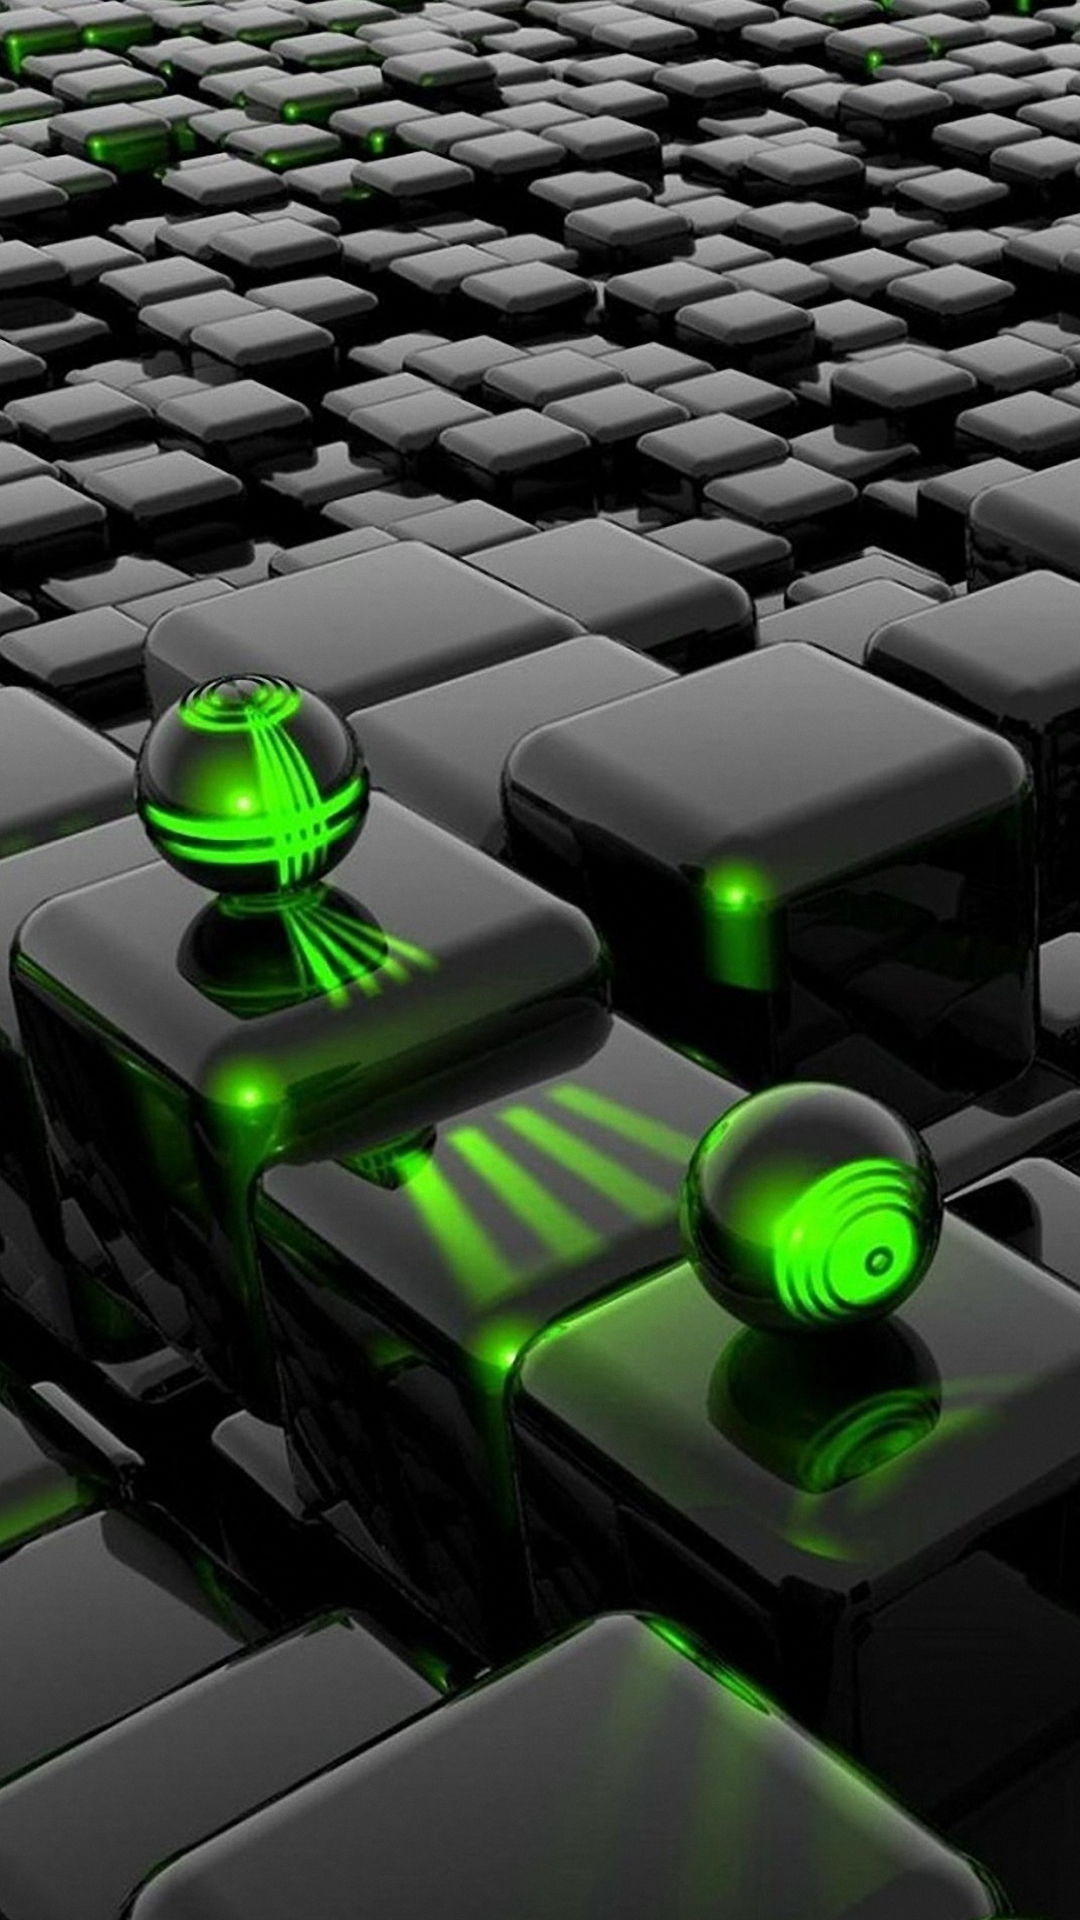 download 3d green ball dark cubes wallpaper for iphone 6s plus 1080x1920